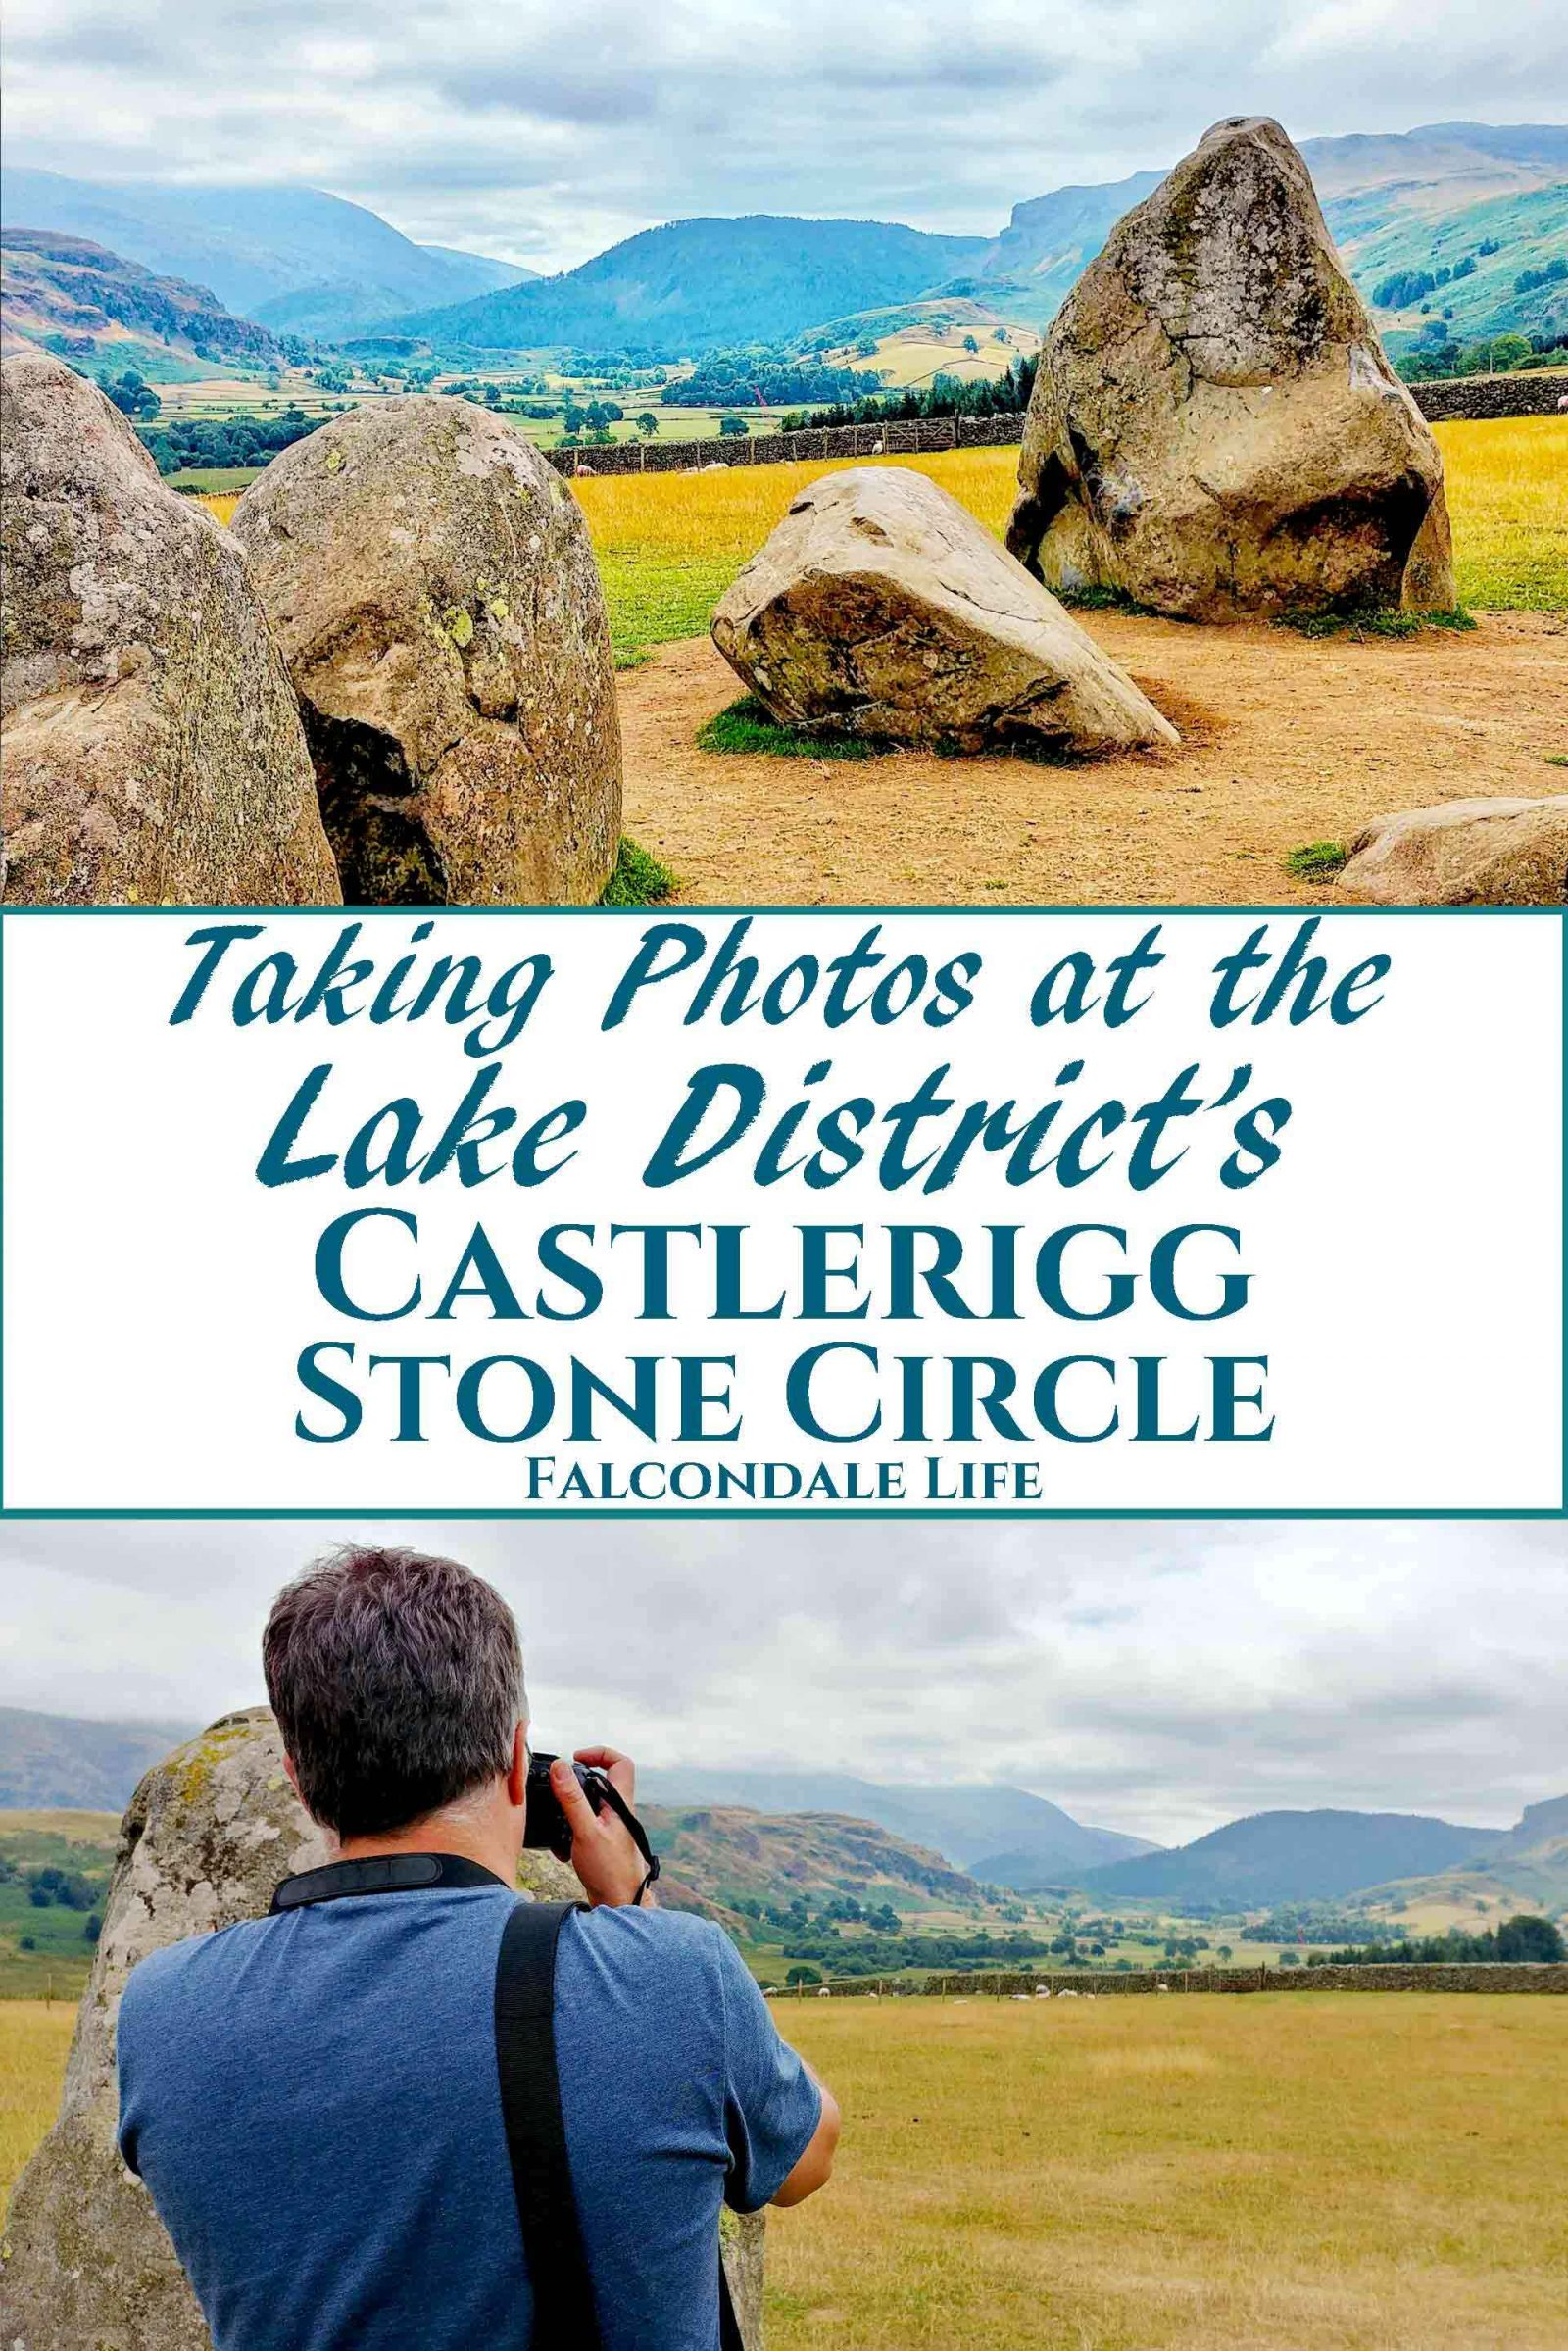 I only had my phone and 15 minutes, so how did I get some nice photos of Castlerigg Stone Circle in the Lake District? Photography tips and visitor info. Taking photos at Castlerigg Stone Circle in the Lake District on Falcondale Life blog. Image description: high contrast image of part of Castlerigg Stone Circle, the landscape beyond and a photographer.